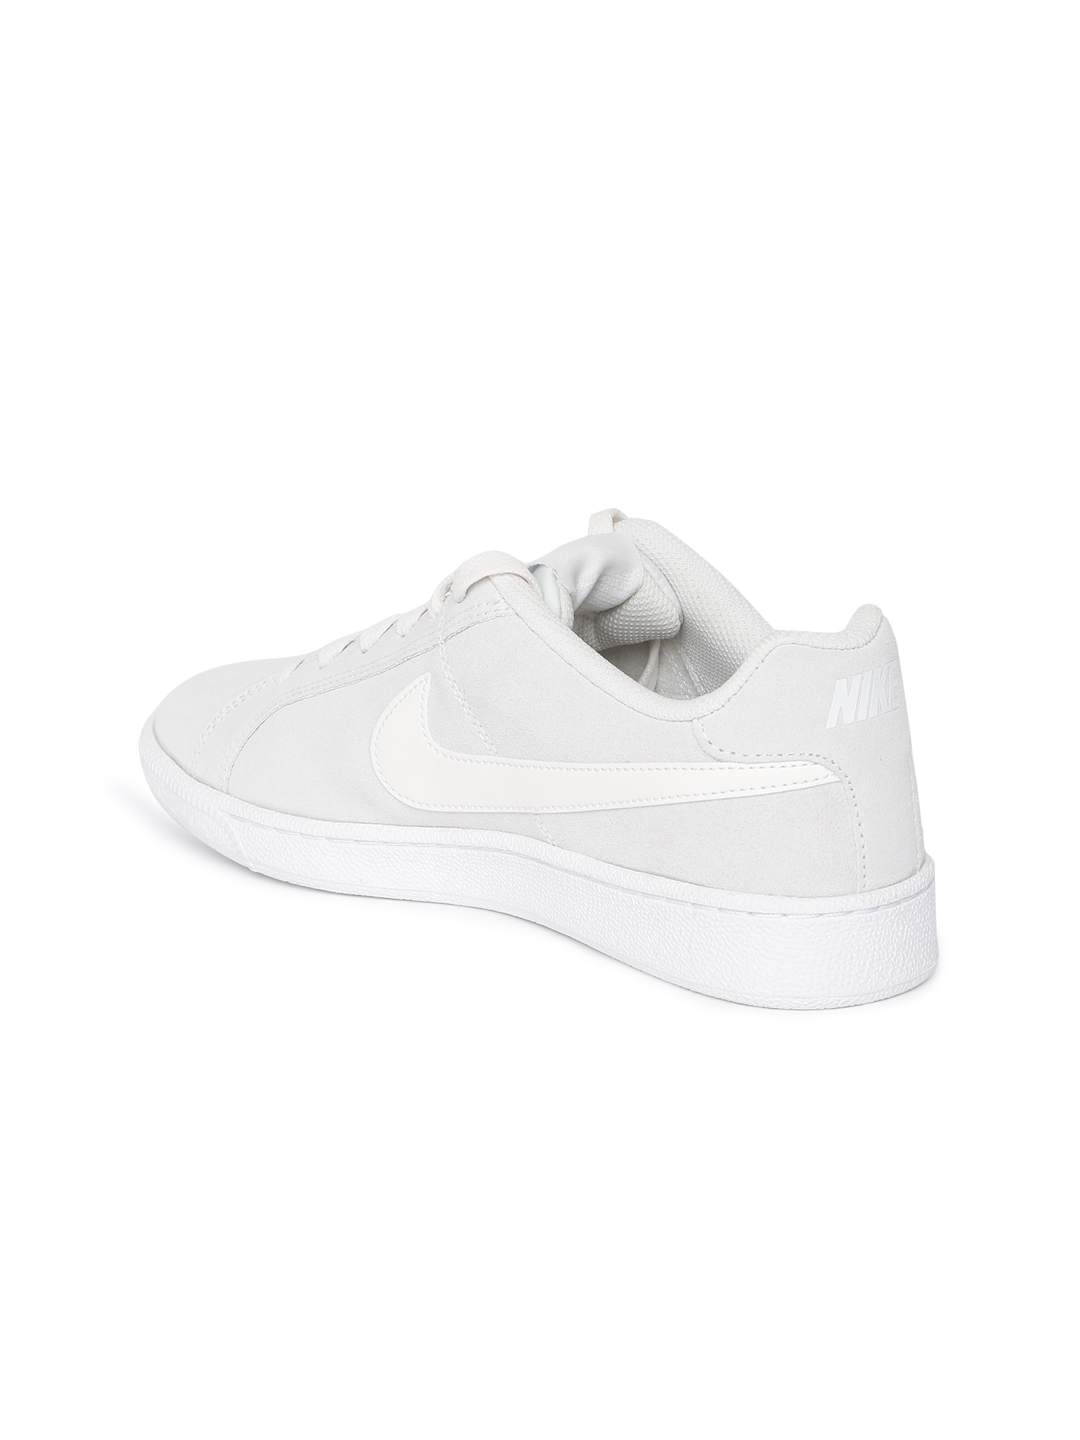 957d892b486a Buy Nike Women Off White Court Royale Premium Sneakers - Casual ...